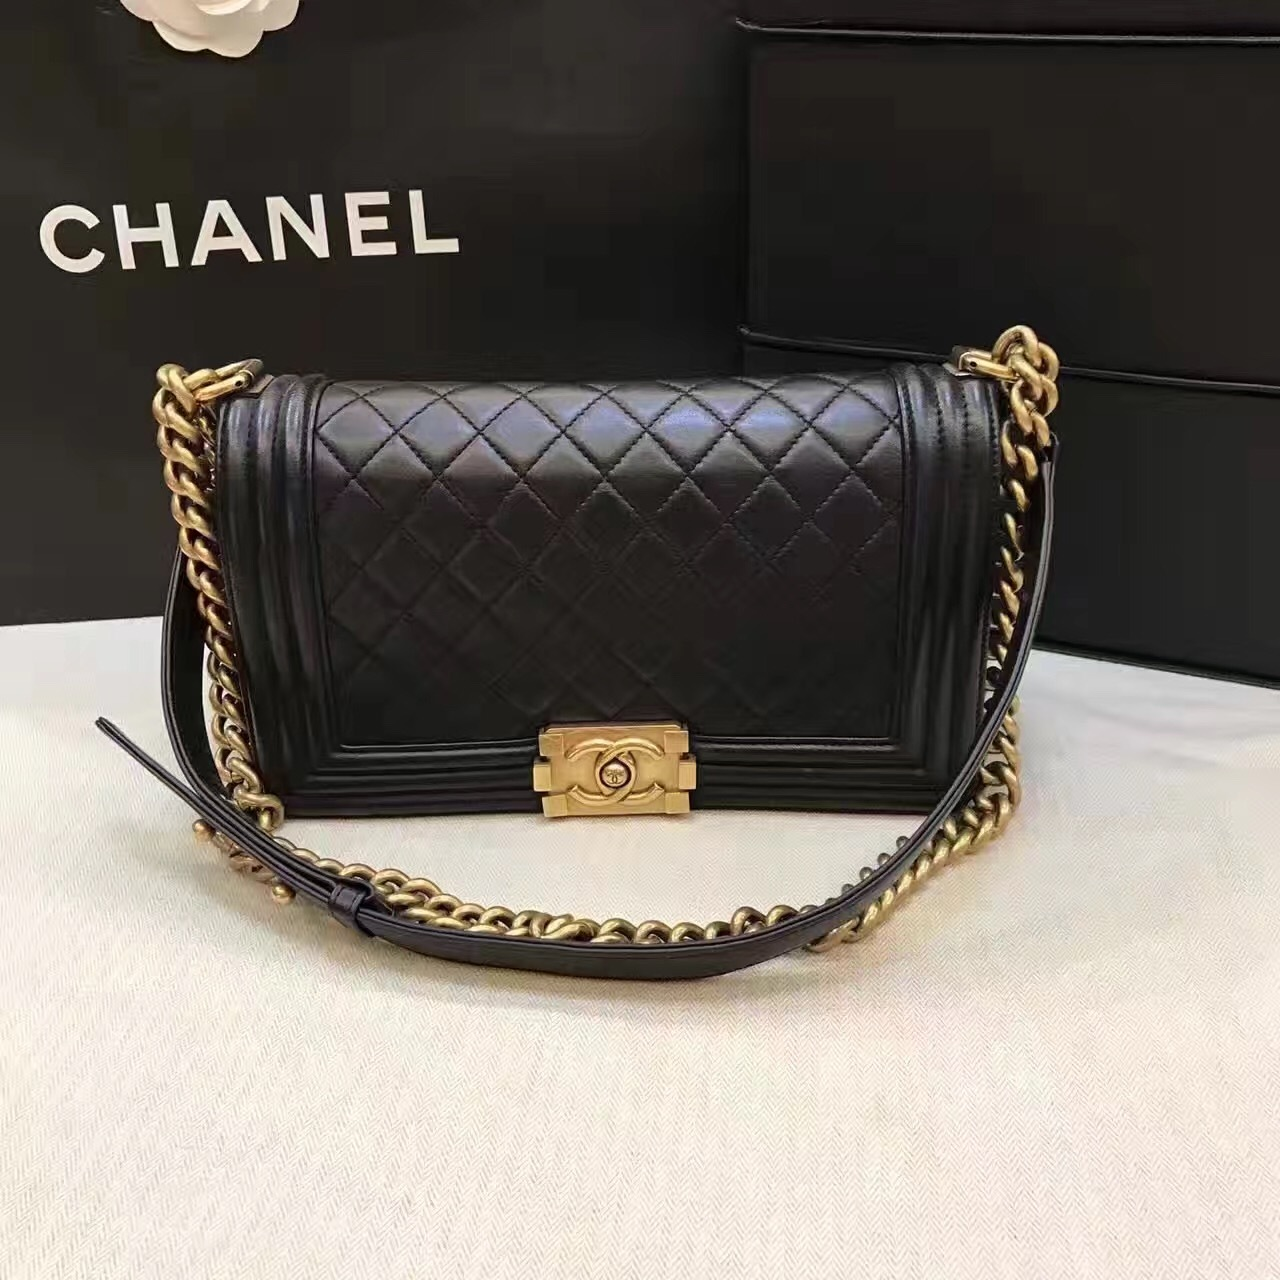 712ed3c5980a AUTHENTIC CHANEL LE BOY BLACK LAMBSKIN MEDIUM FLAP BAG GHW- Handbags ...